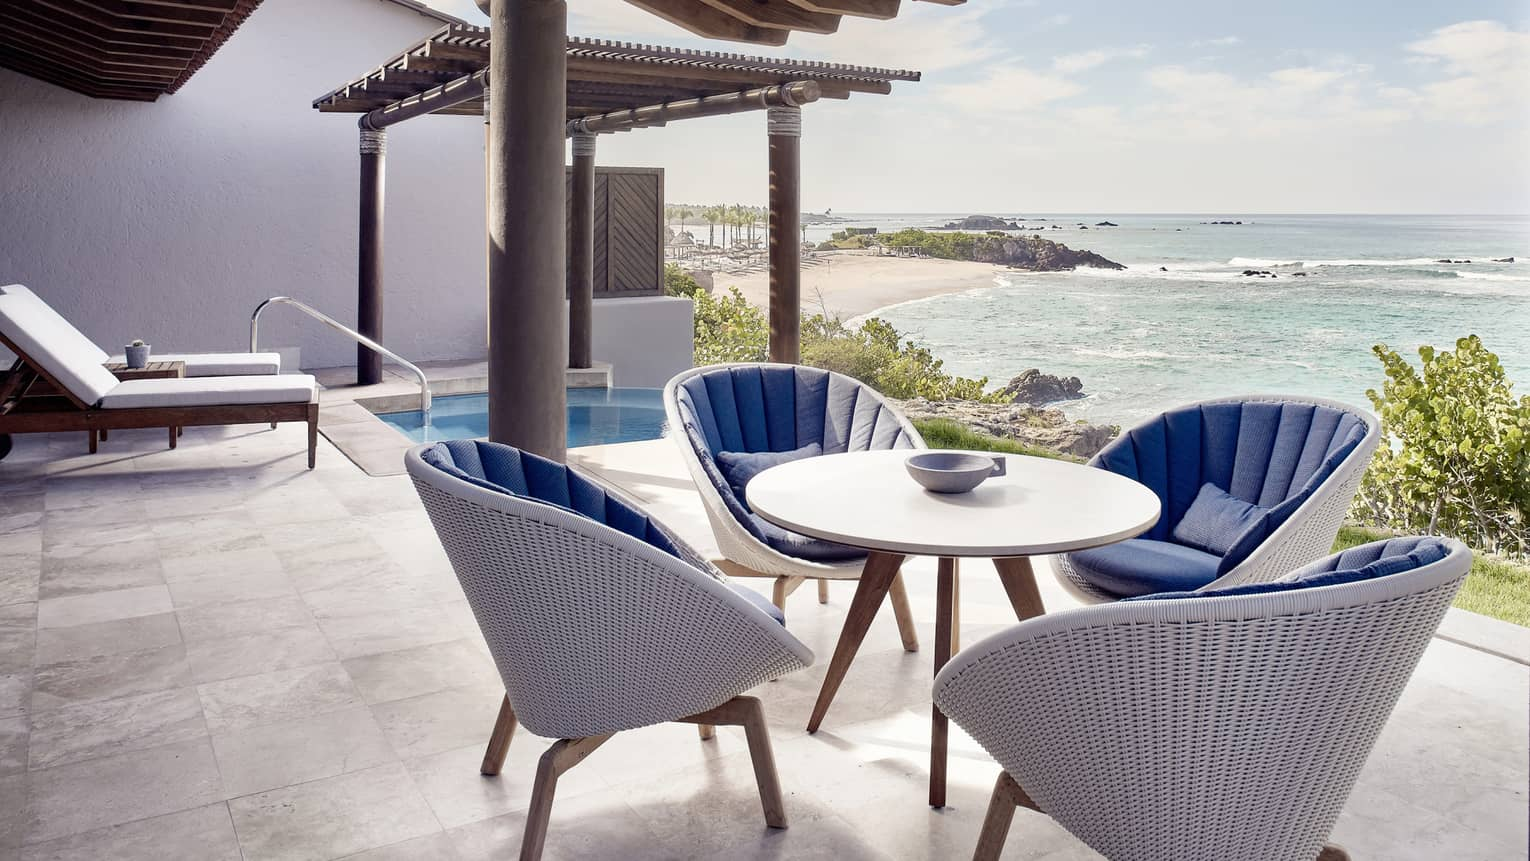 Outdoor terrace, dining table with four wicker chairs, plunge pool, ocean view